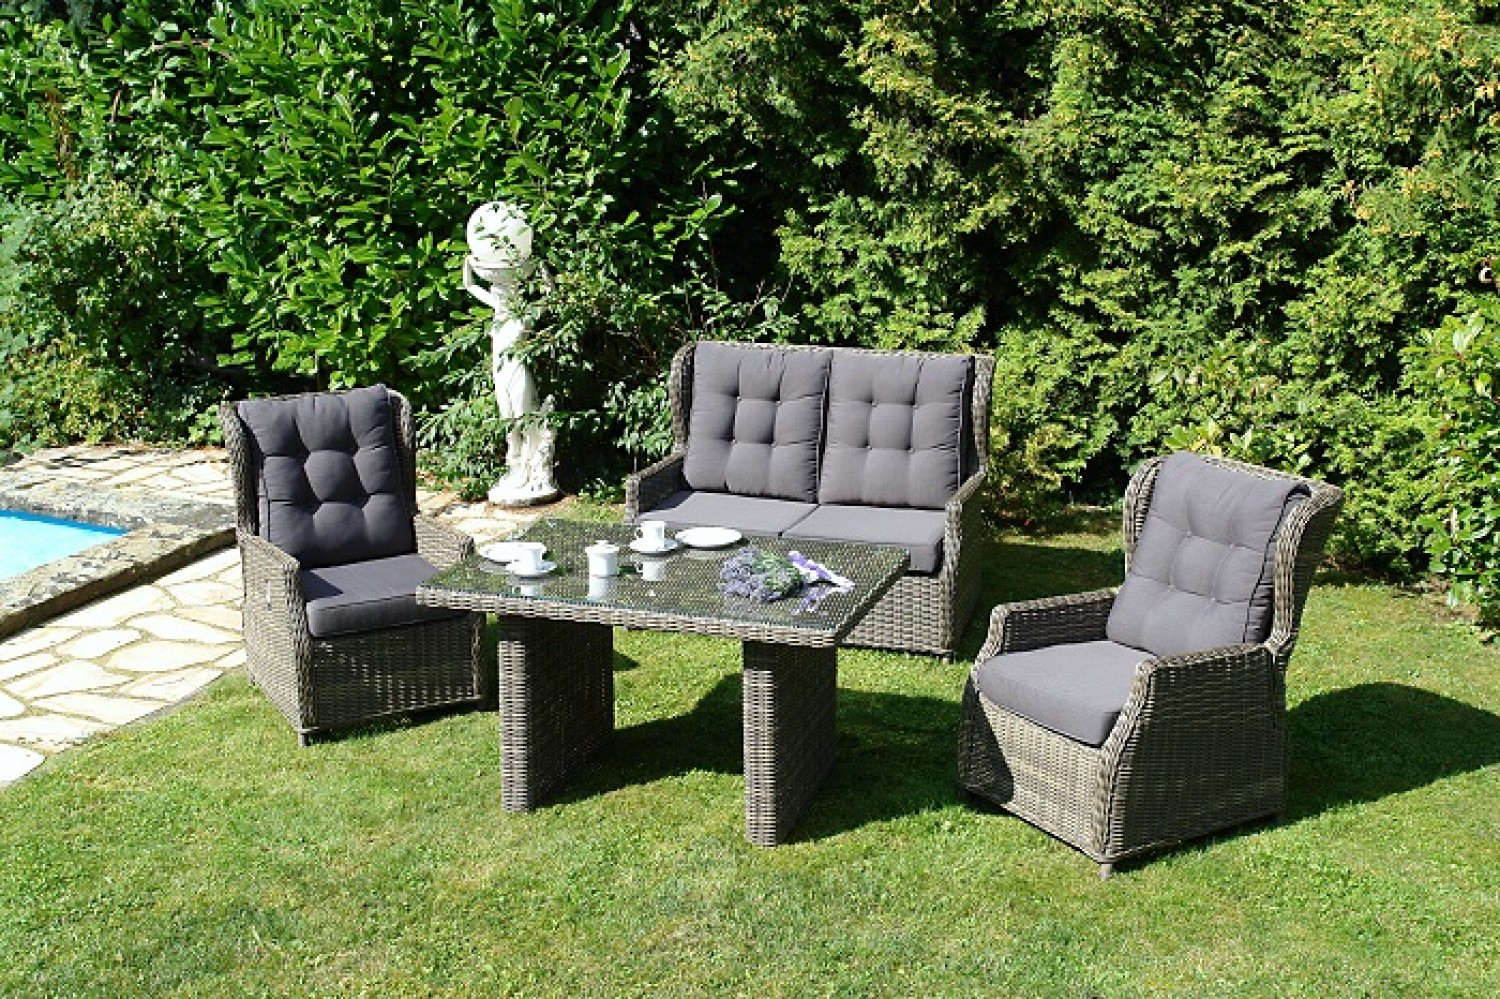 leona garten sessel verstellbar alu geflecht gartenm bel batavia gartenm bel onlineshop f r. Black Bedroom Furniture Sets. Home Design Ideas